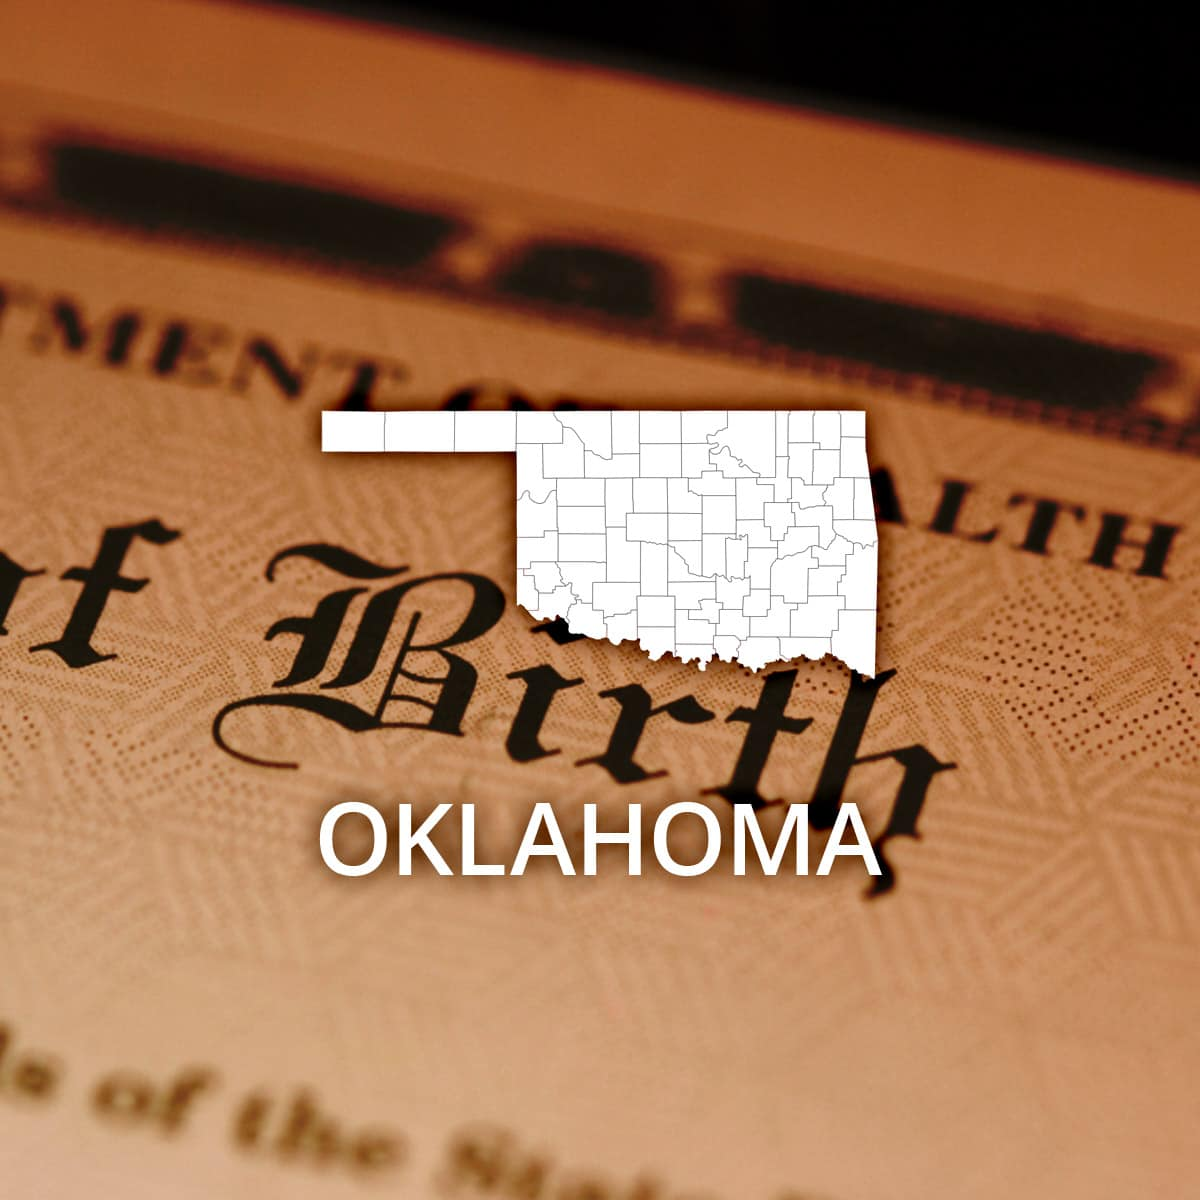 Where to Obtain a Oklahoma Birth Certificate